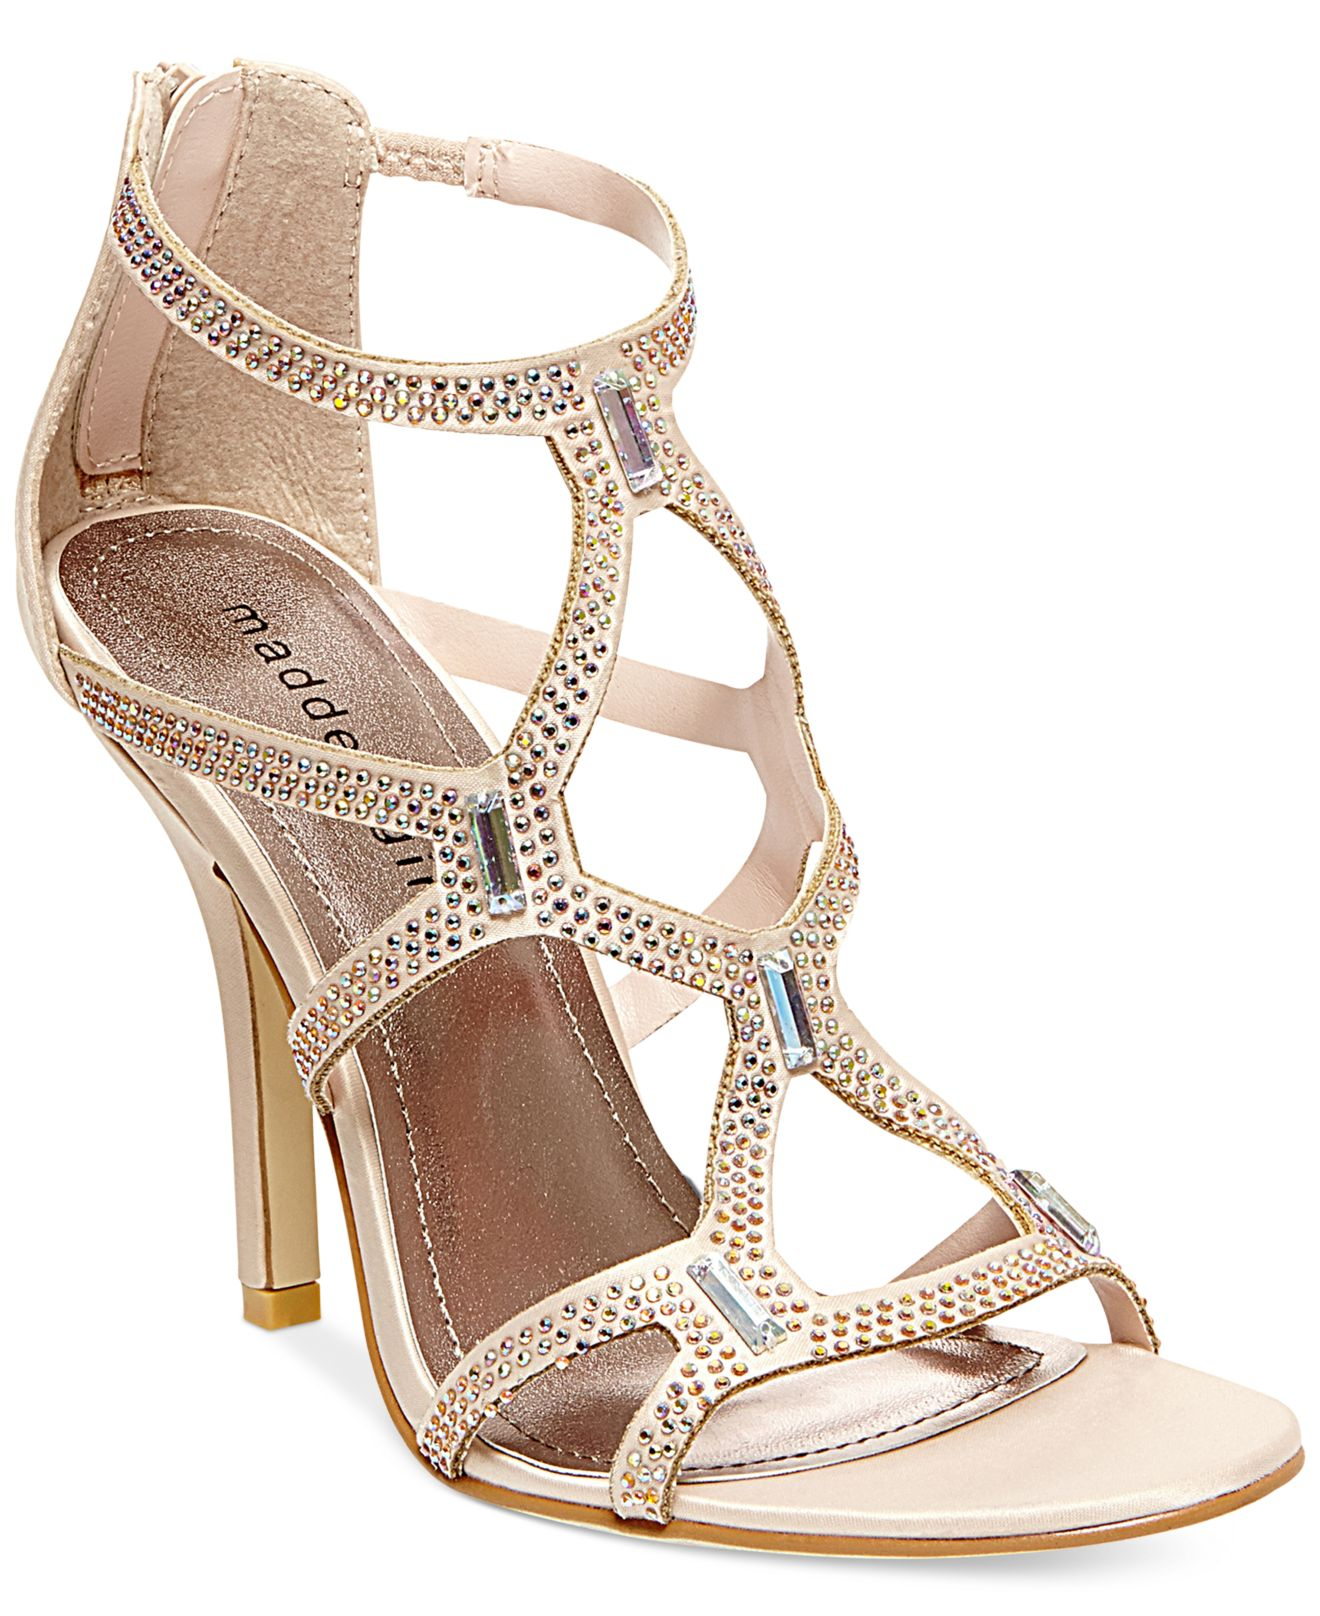 2960a8cd4d0f Lyst - Madden Girl Digitize Caged Rhinestone Dress Sandals in Pink